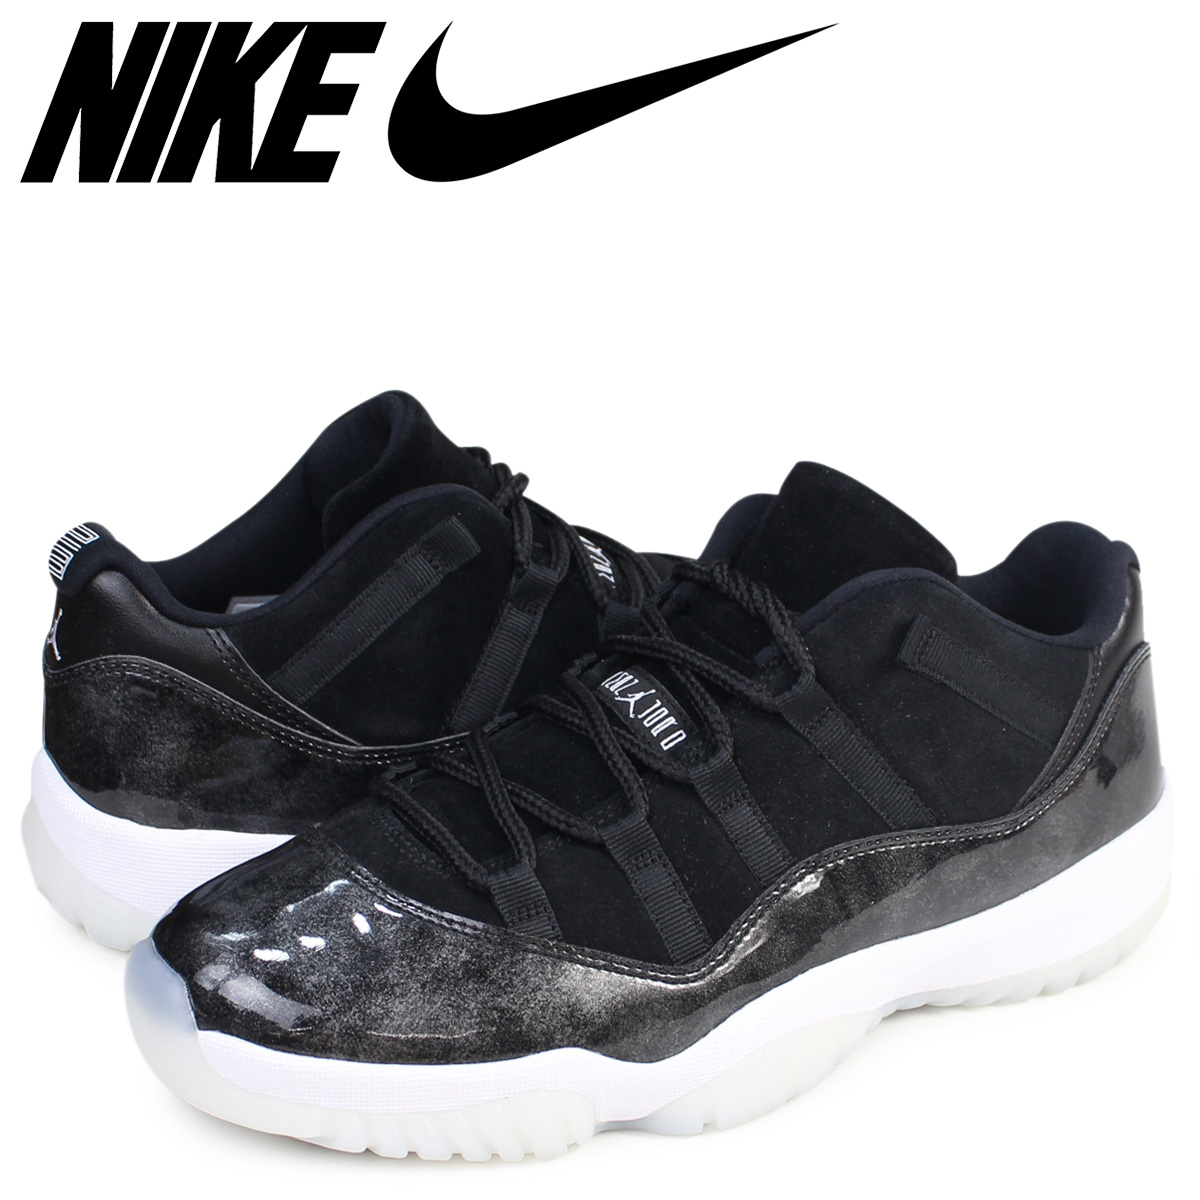 timeless design e88bb d9f2e Nike NIKE Air Jordan 11 sneakers AIR JORDAN 11 LOW BARONS low 528,895-010  men's black